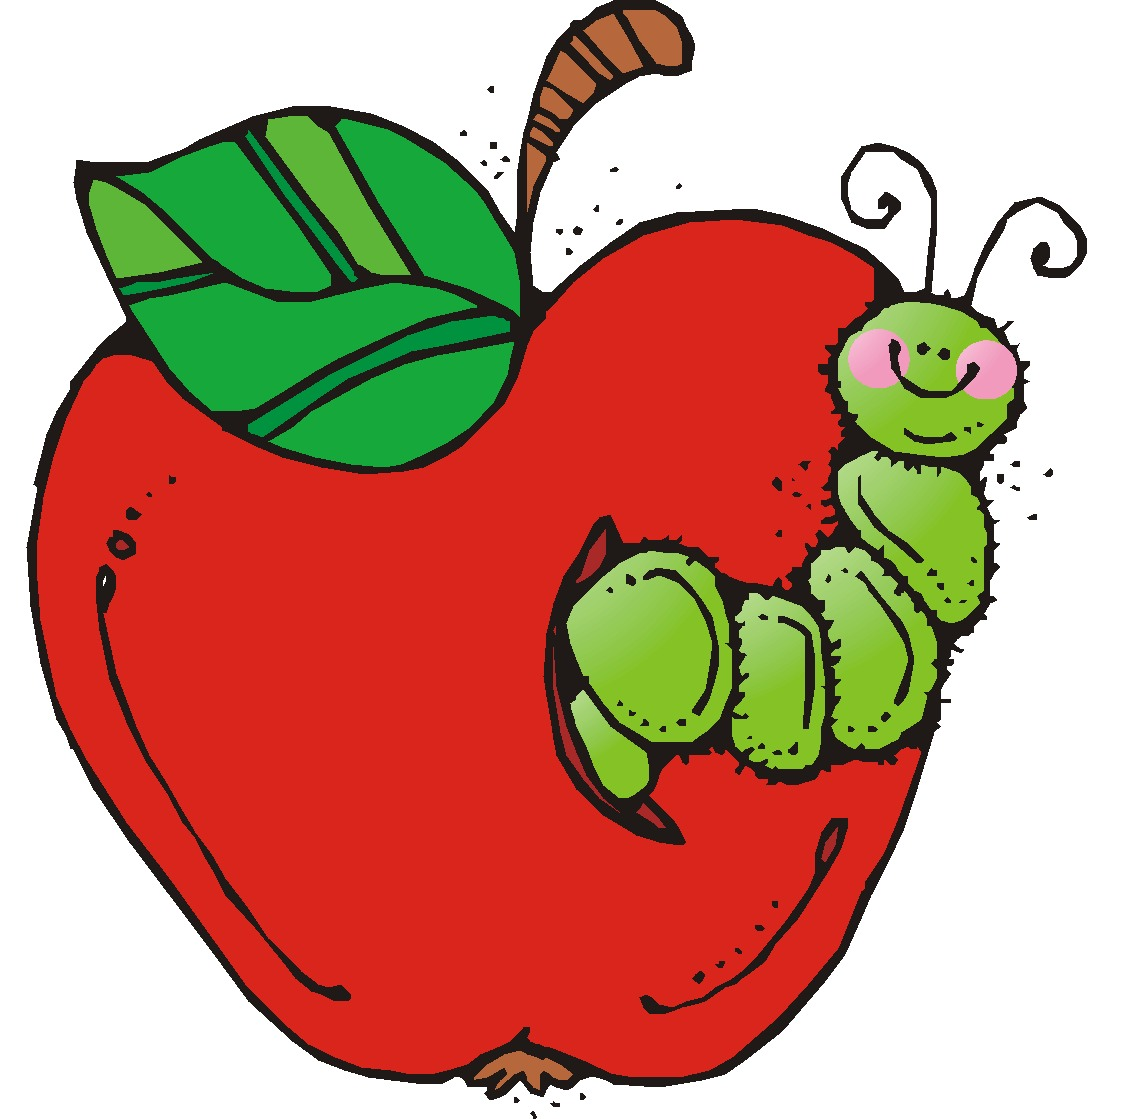 Image result for book apple worm,